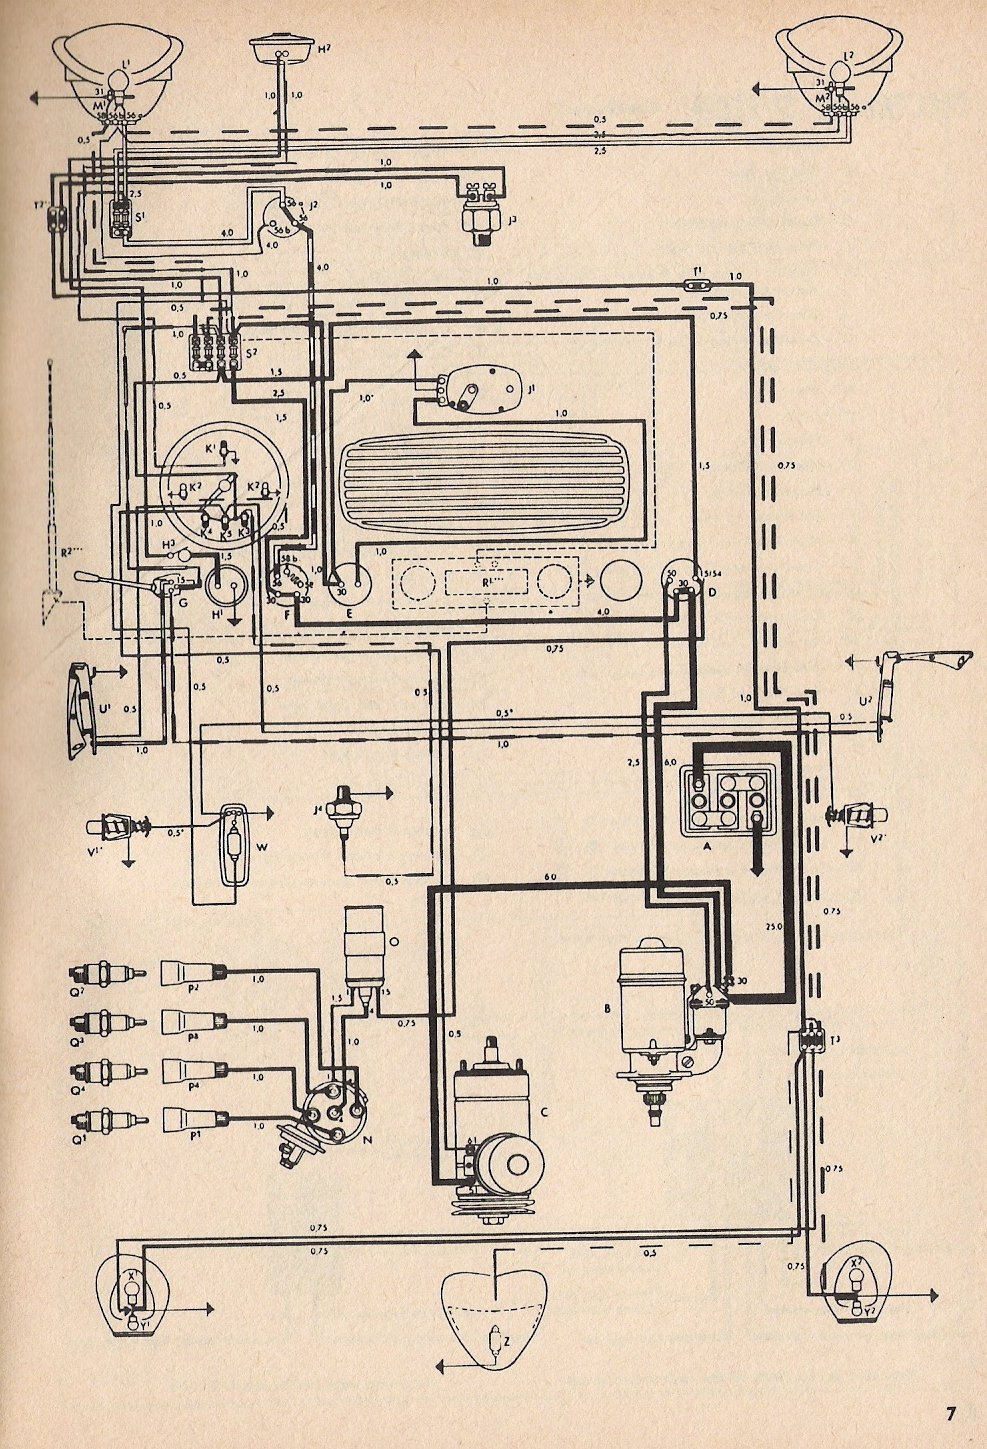 Type 1 Wiring Diagrams 1972 Vw Bus Ignintion Switch